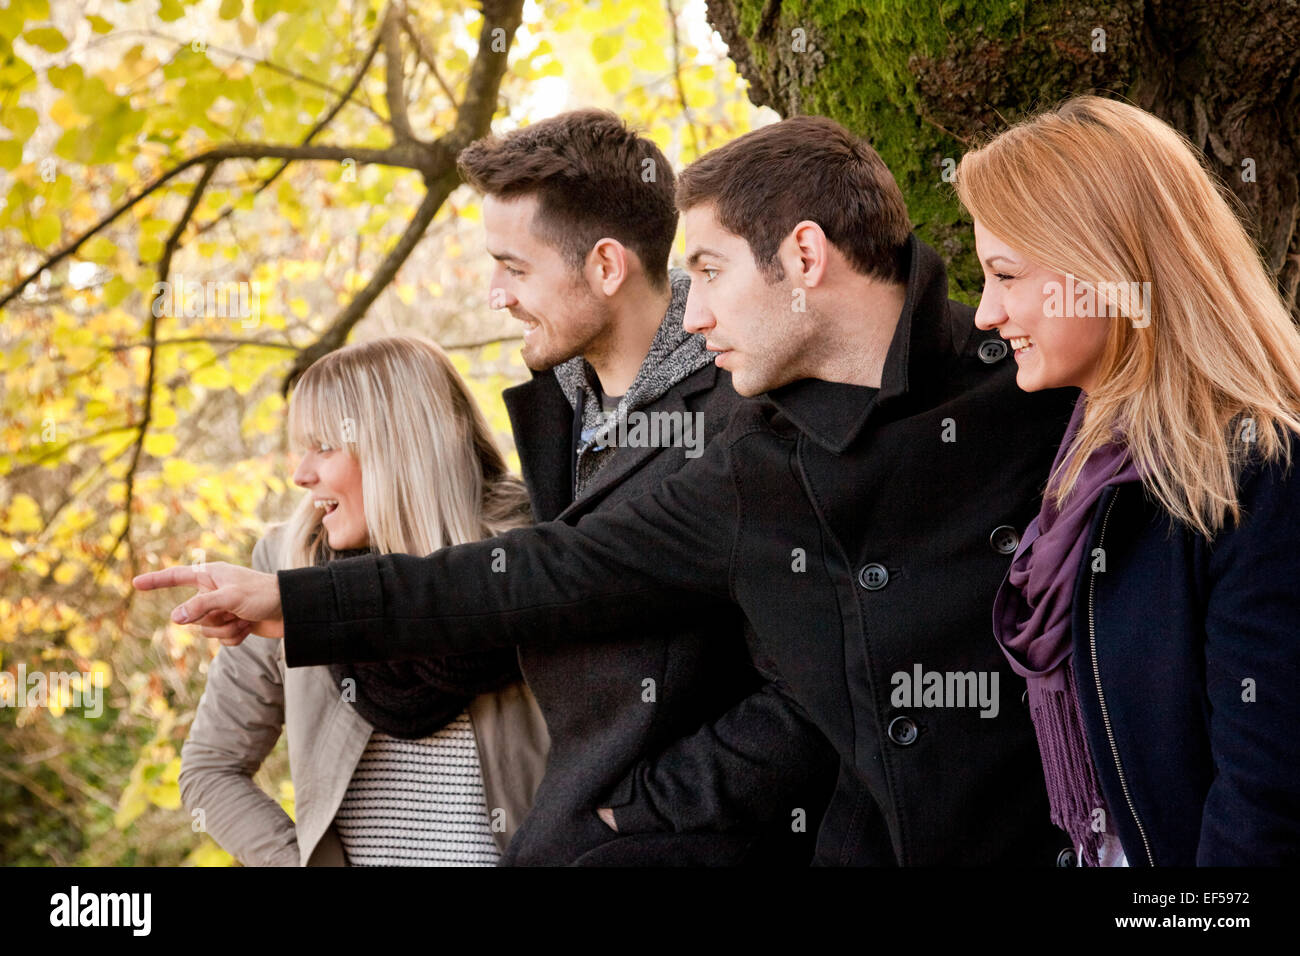 Group of friends, man pointing with hand - Stock Image